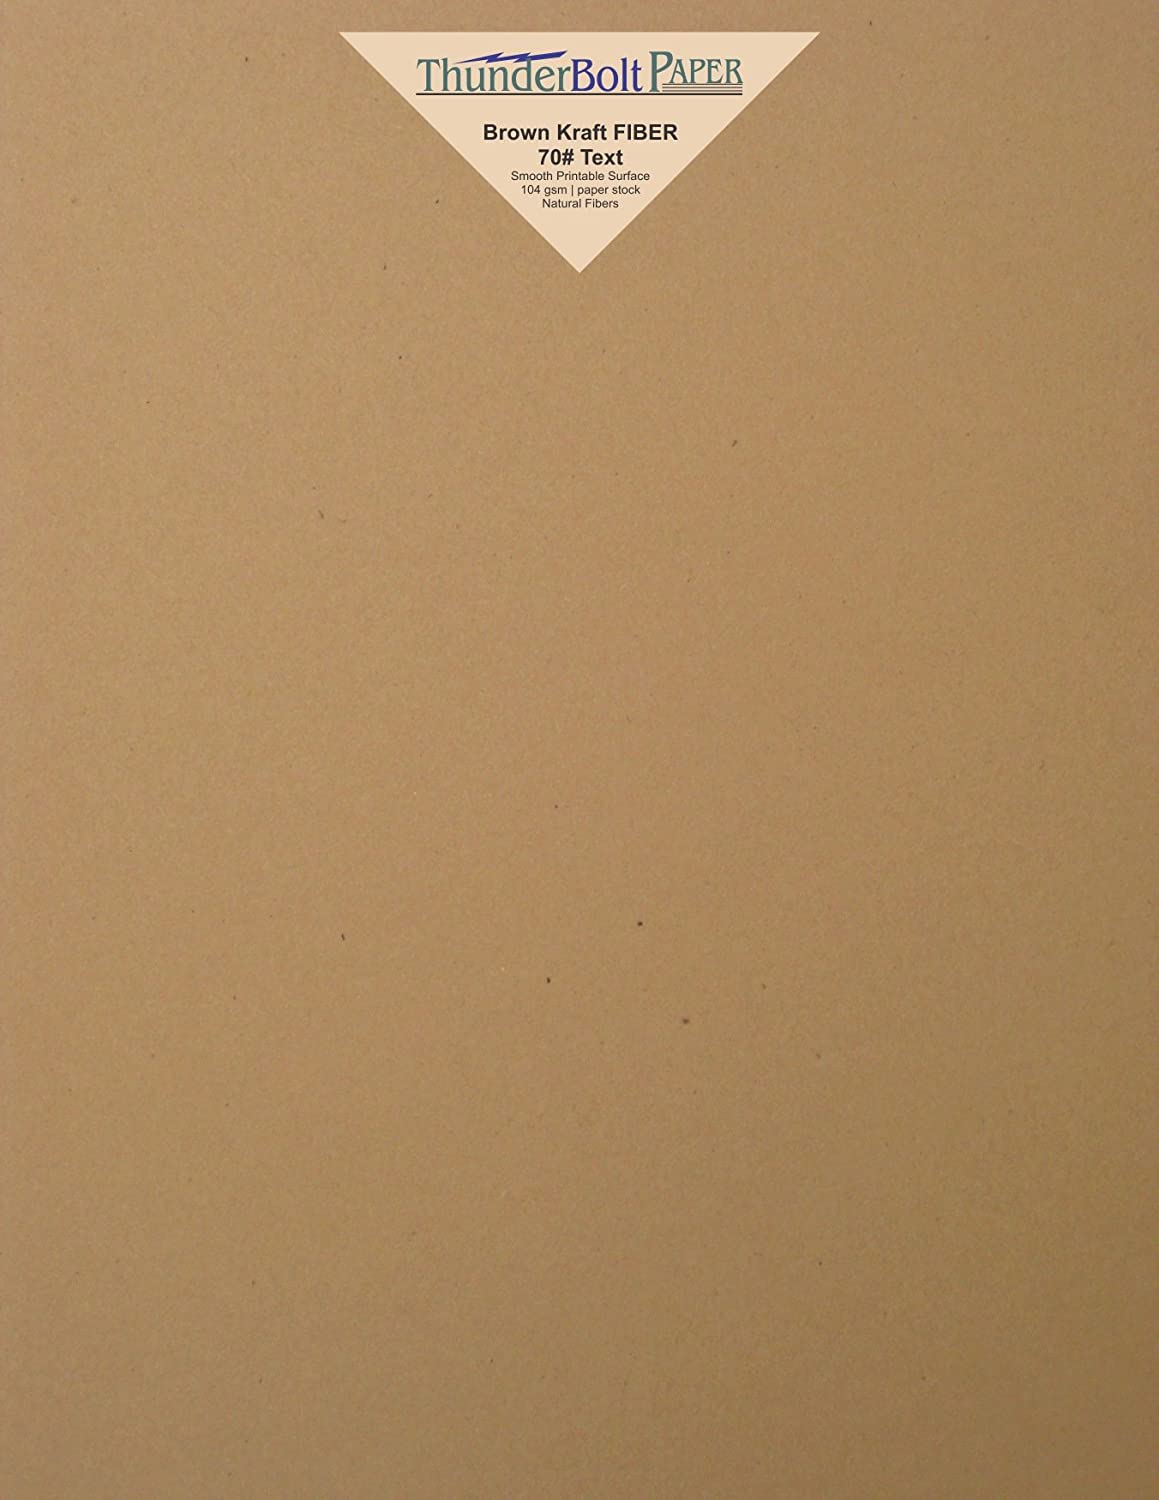 250 Brown Kraft Fiber 70# Text Paper Sheets - 8.5 X 11 (8.5X11 Inches) Standard Letter|Flyer Size - (not cardstock) Weight - Rich Earthy Color with Natural Fibers - Smooth Finish TBP fba-KRA70-8.5x11-250